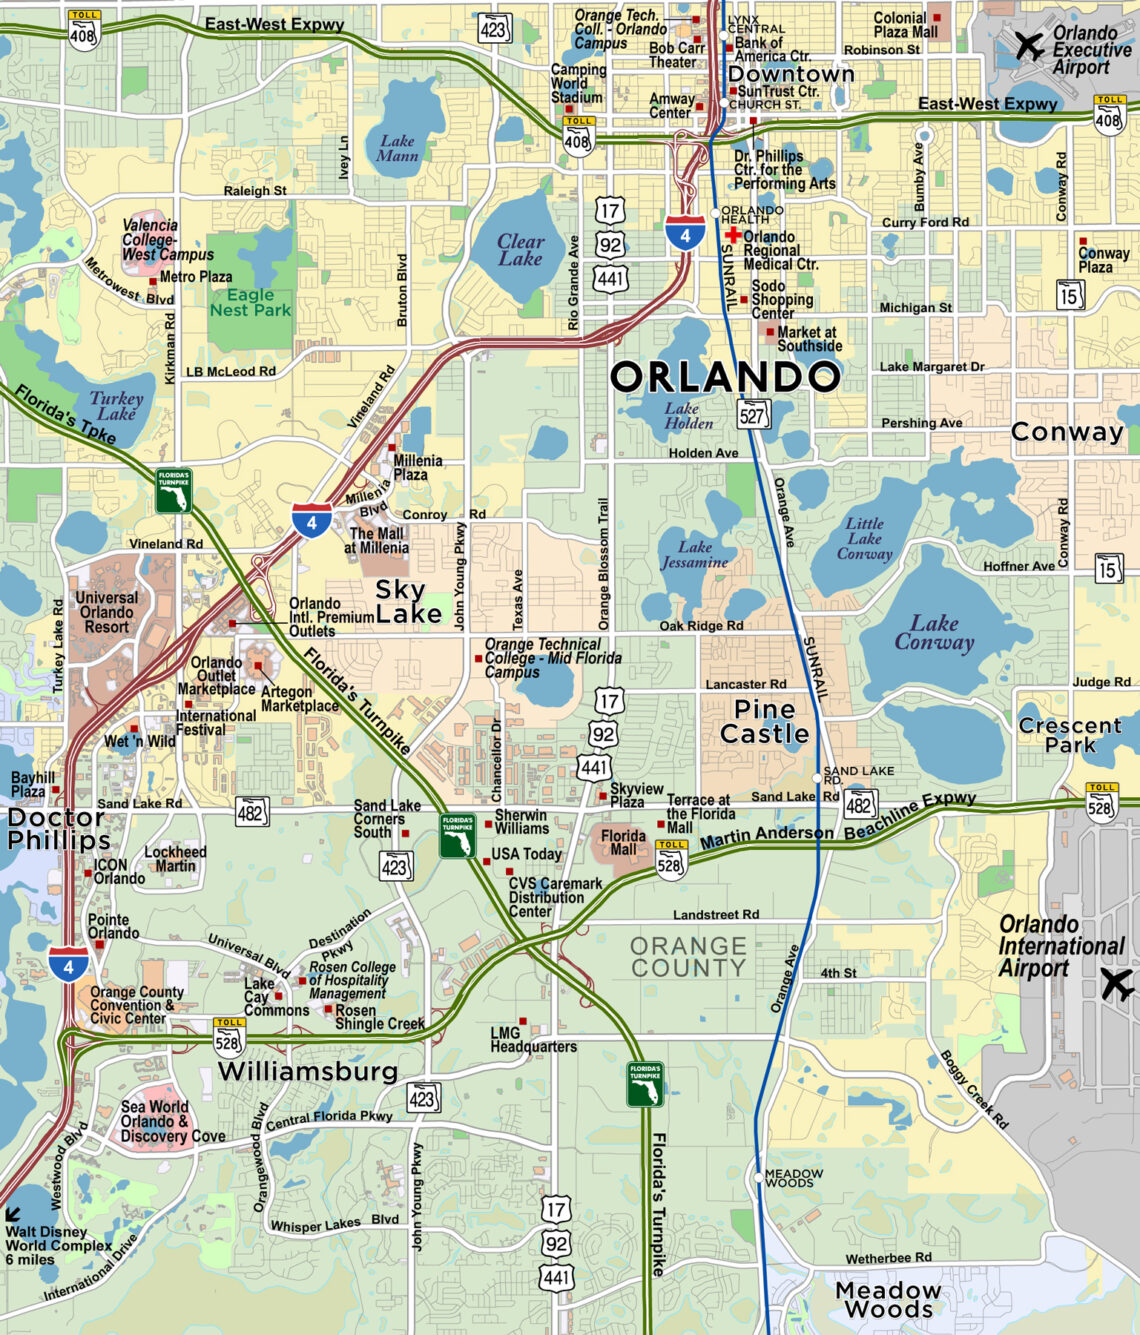 greater orlando area map Custom Mapping Gis Services Orlando Fl Red Paw greater orlando area map